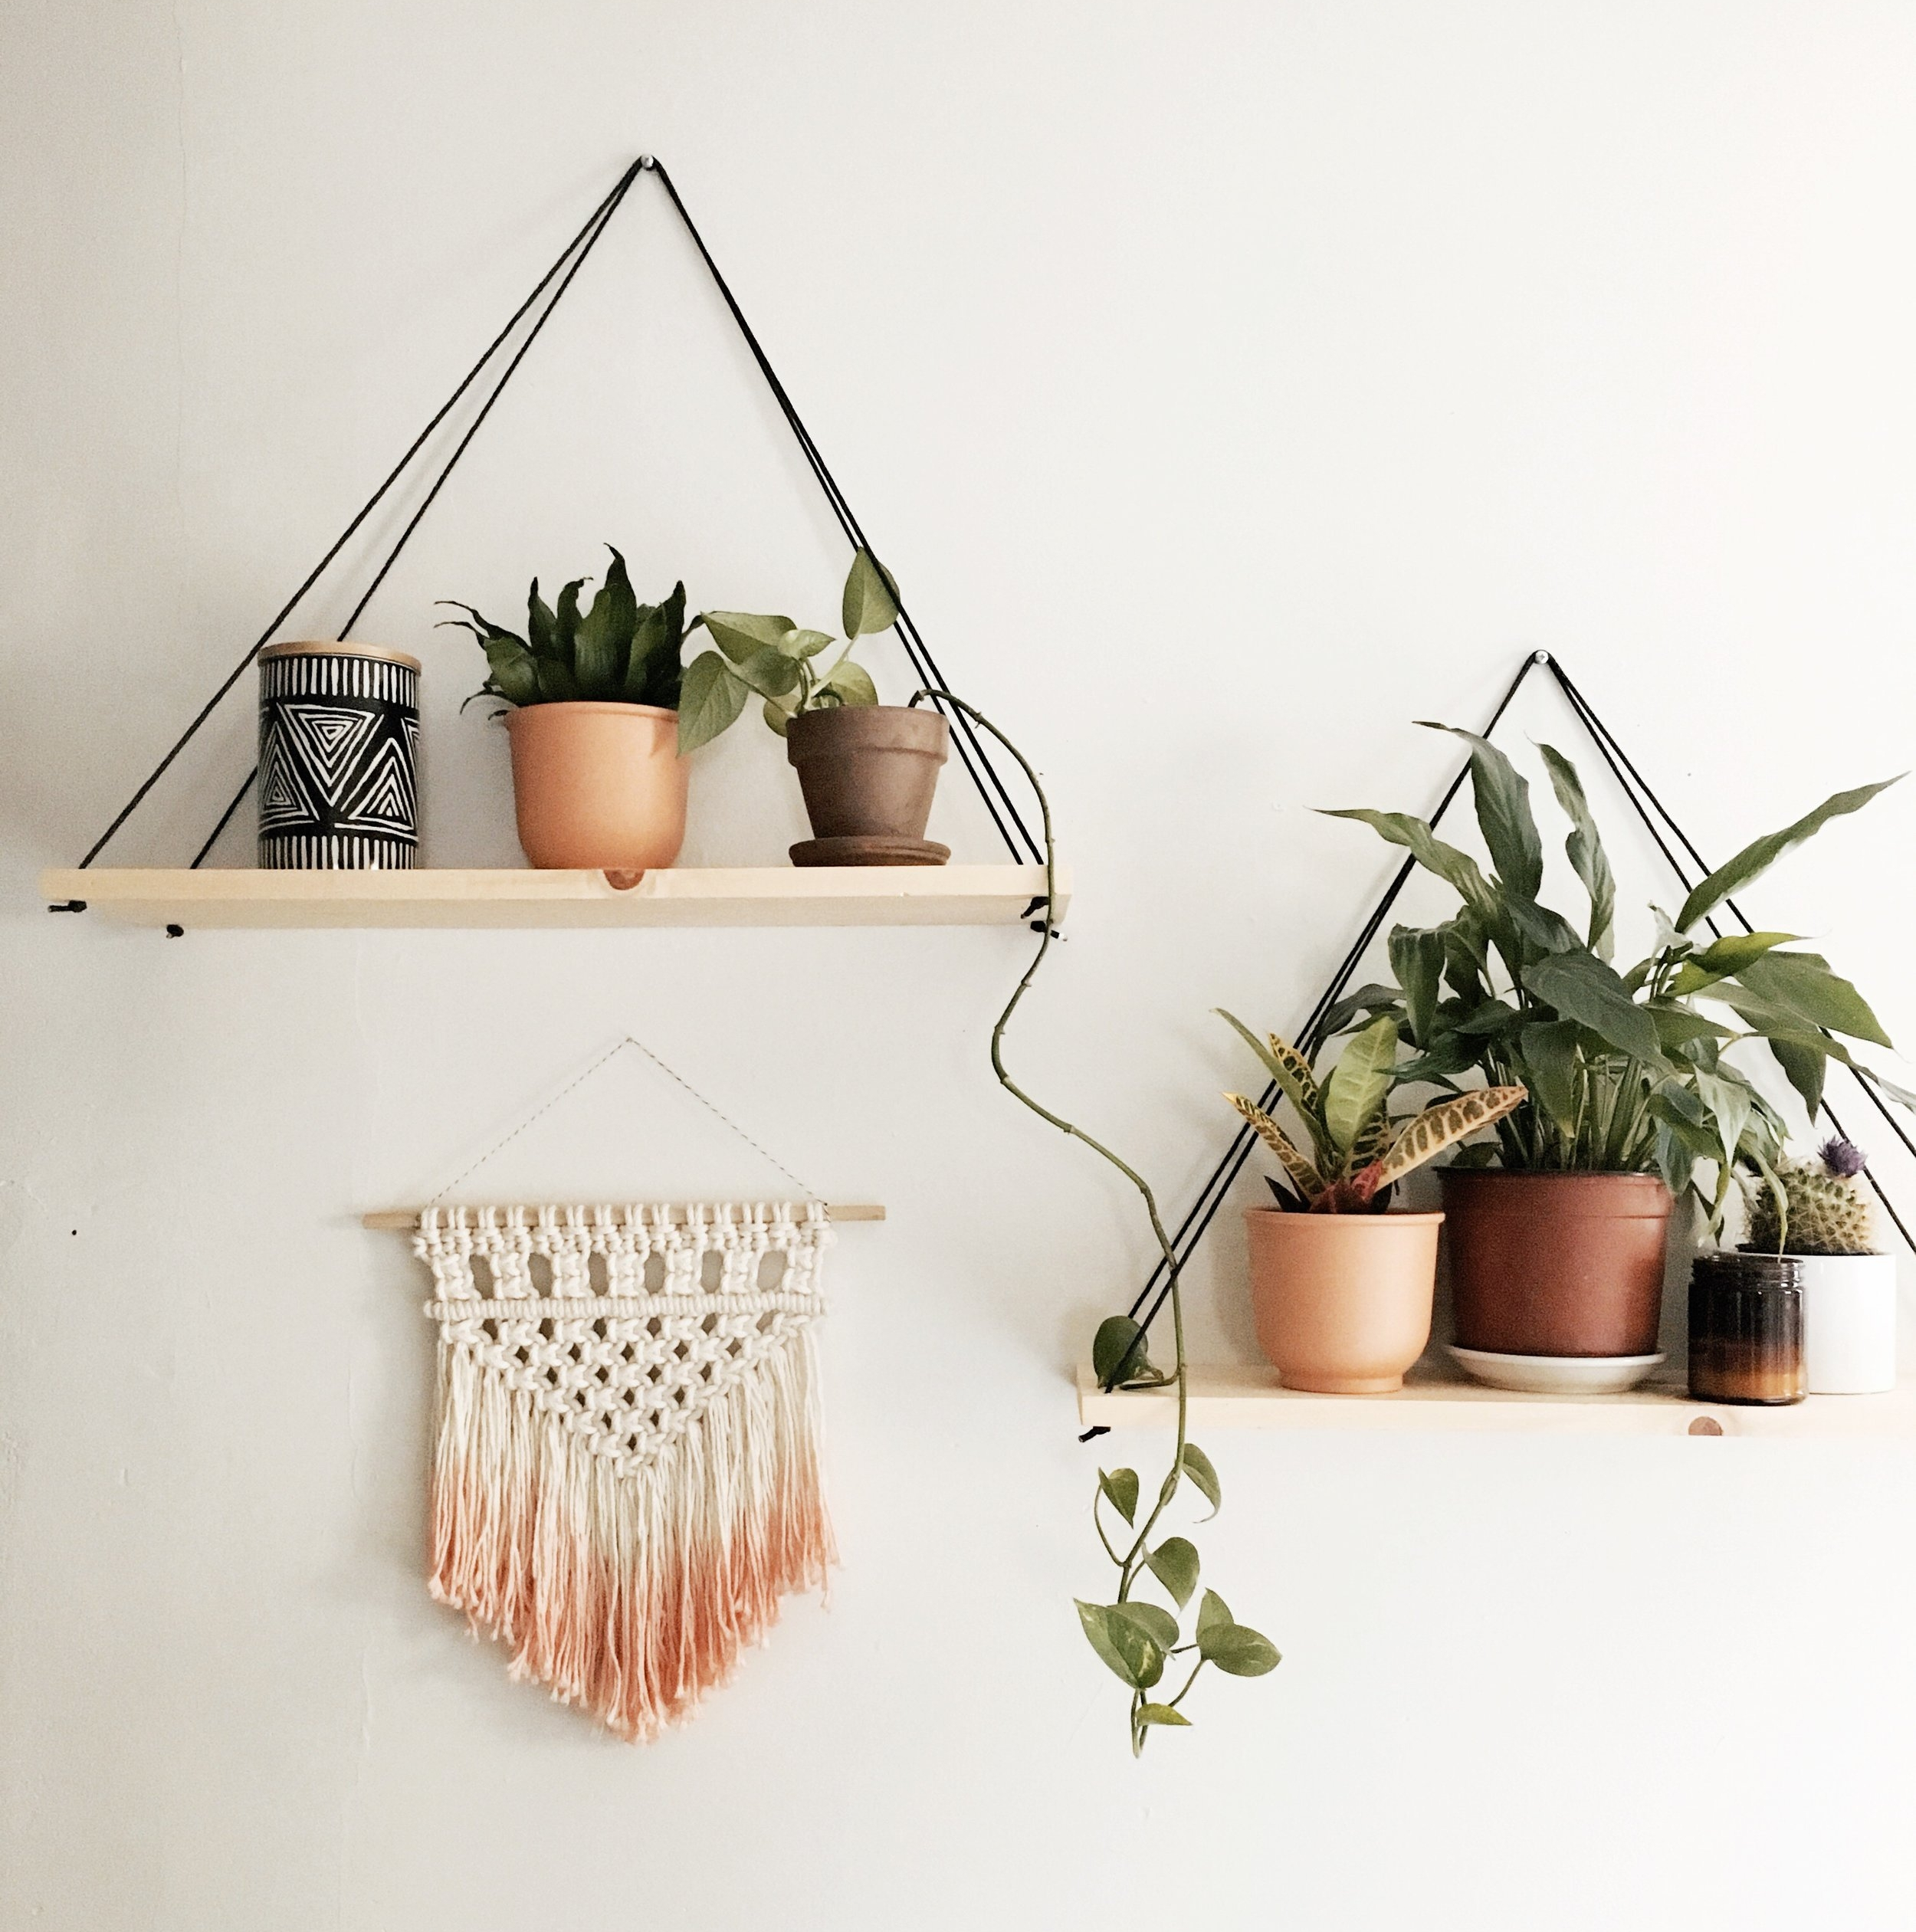 DIY Triangle Hanging Shelves